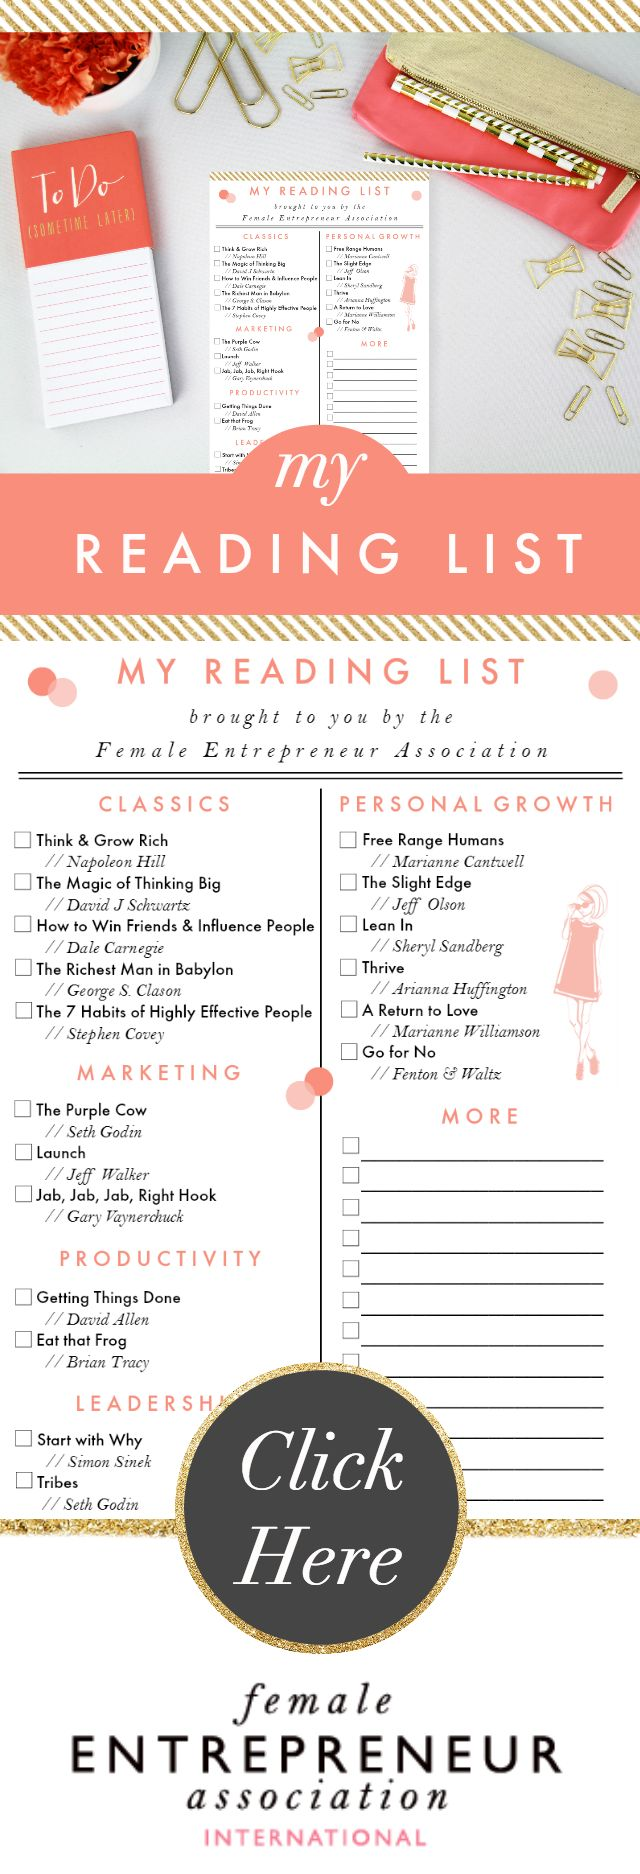 We have a cute printable check-list of incredible books for you. It has space for you to add your own personal list as well.